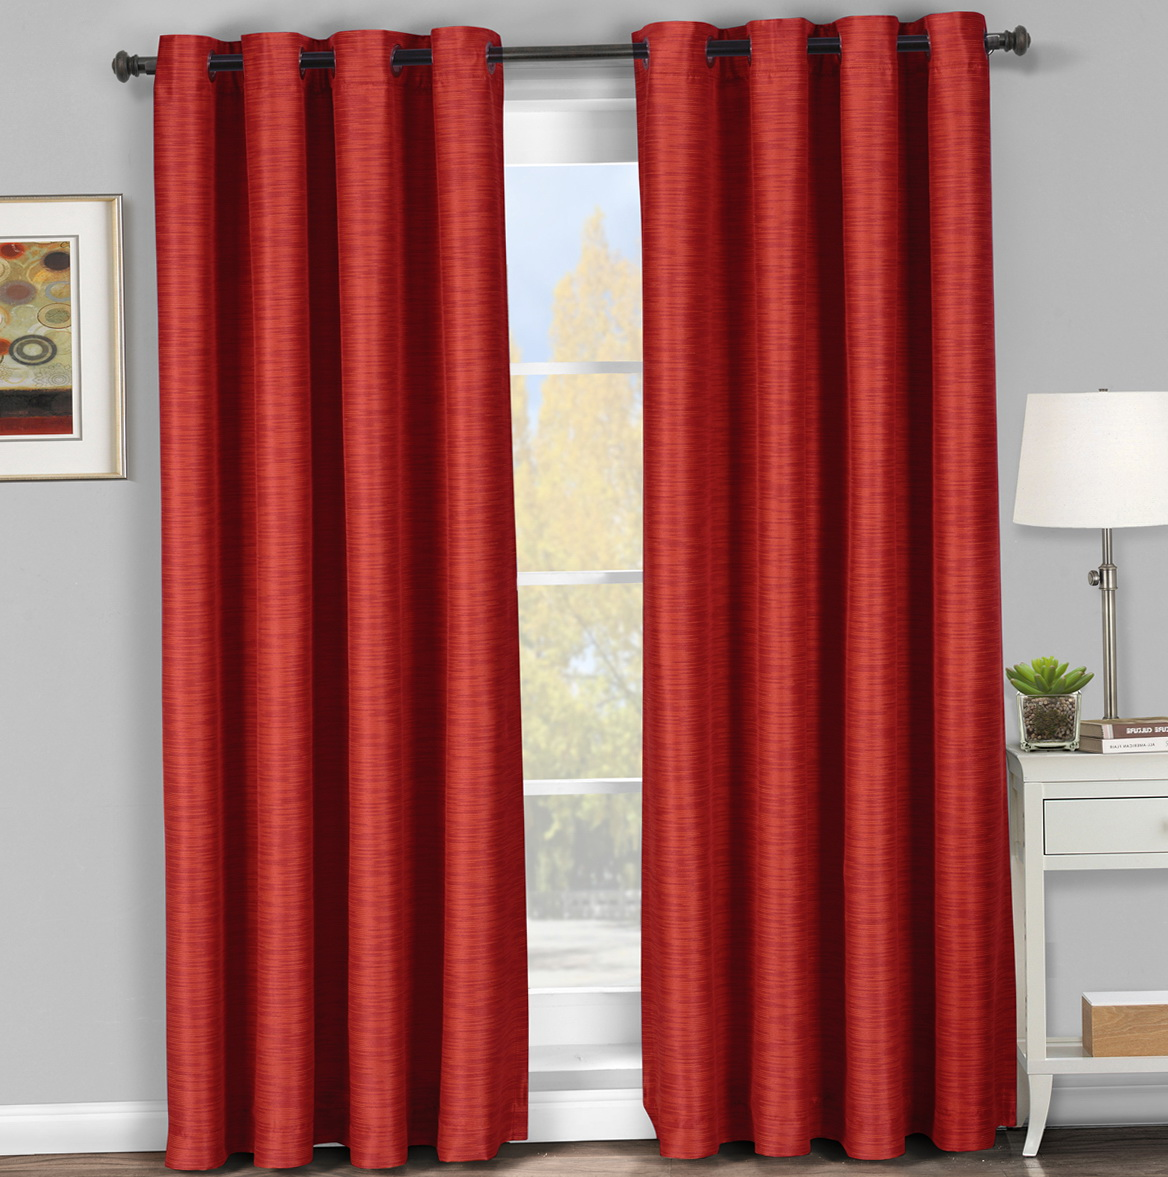 108 Inch Curtains Blackout